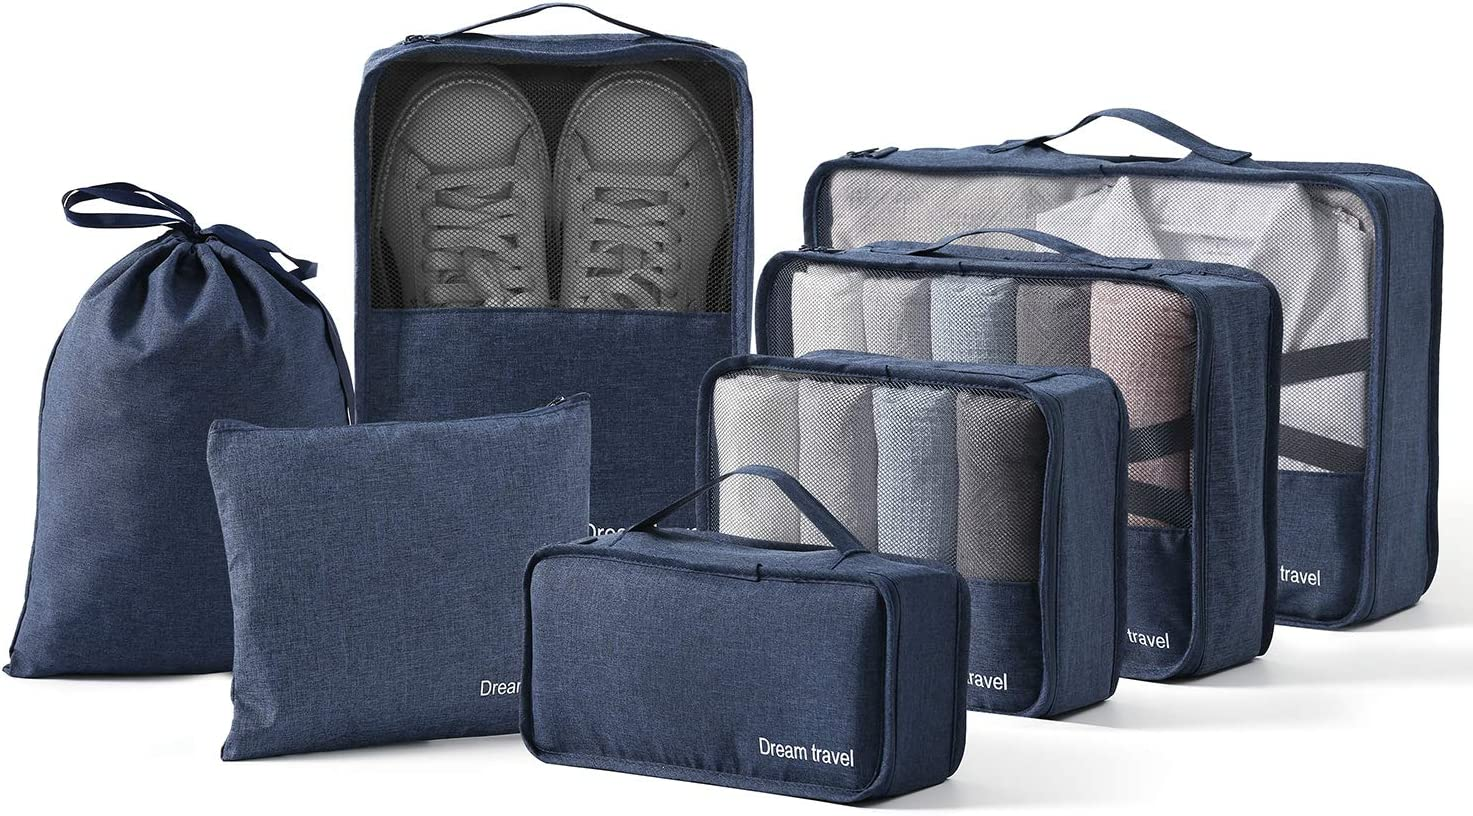 BIMNOOT Packing Cubes 7-Pcs Travel Luggage Packing Organizers Set with Laundry Bag & Shoe Bag (Blue)